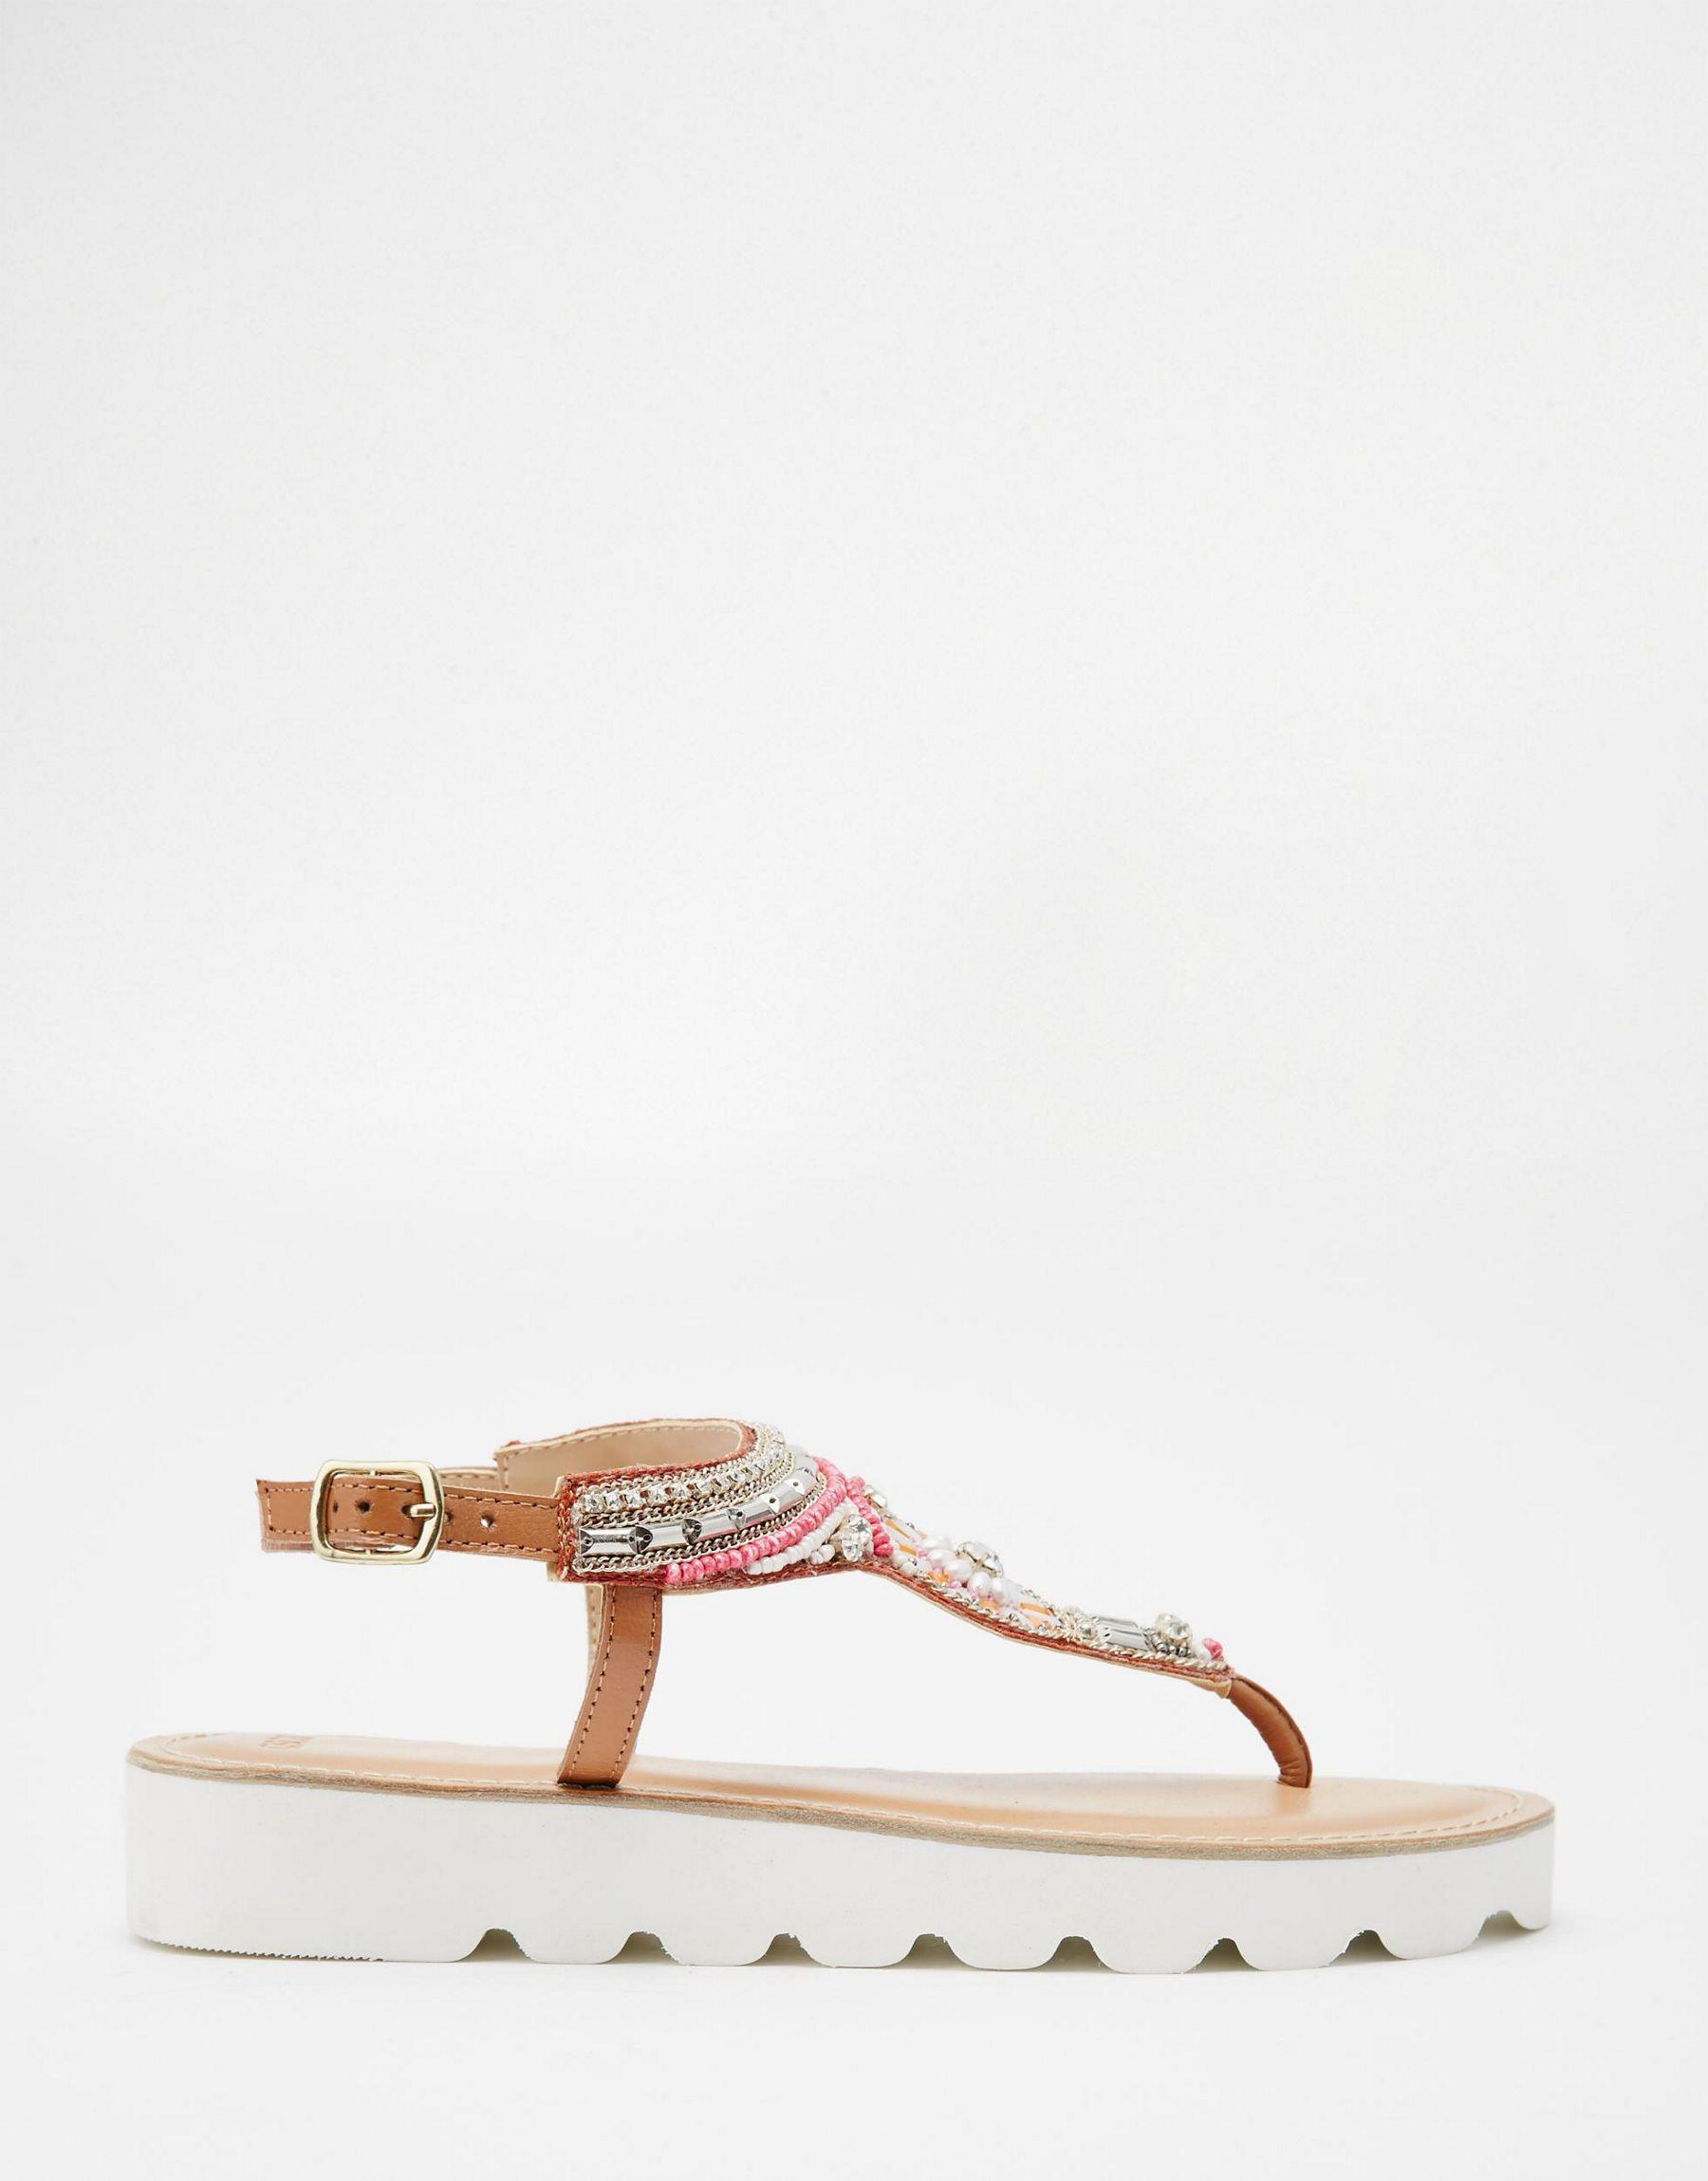 ac3a22f6b84 Lyst - Asos Flavia Leather Beaded Flatform Sandals in Natural